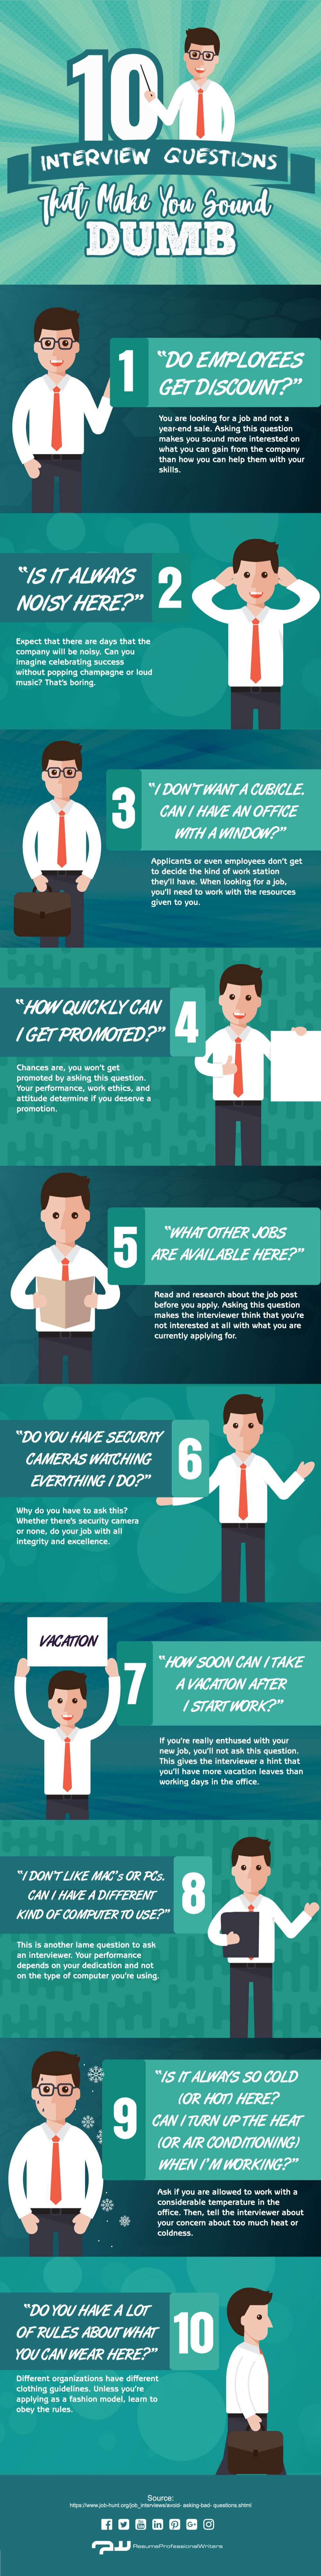 10 Interview Questions That Make You Sound Dumb